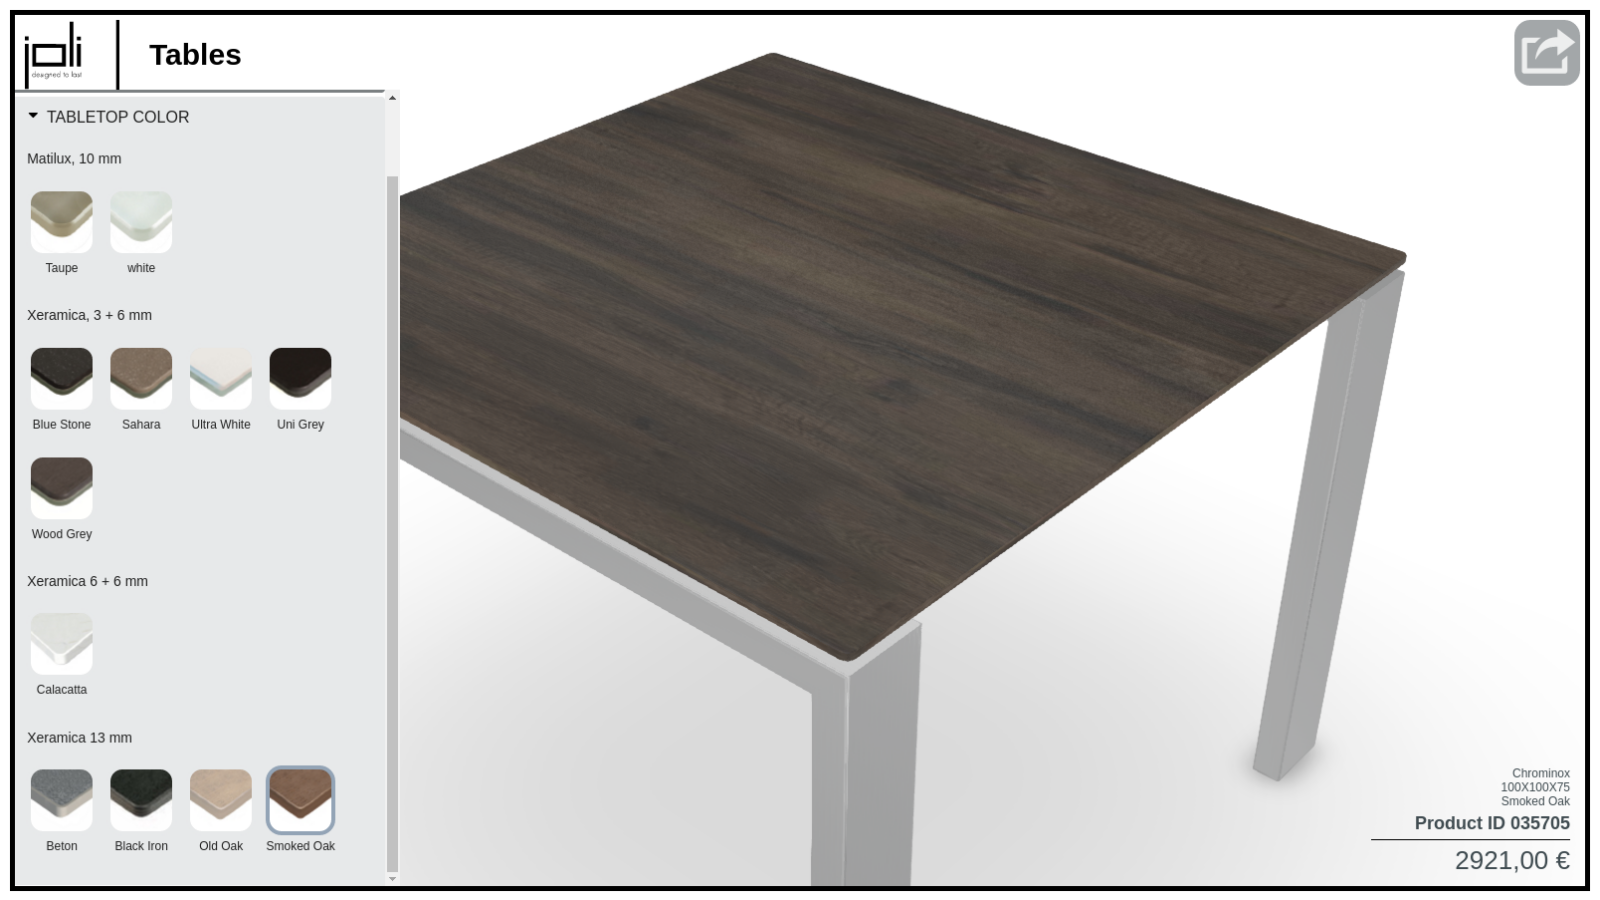 Joli Furniture Configurator preview